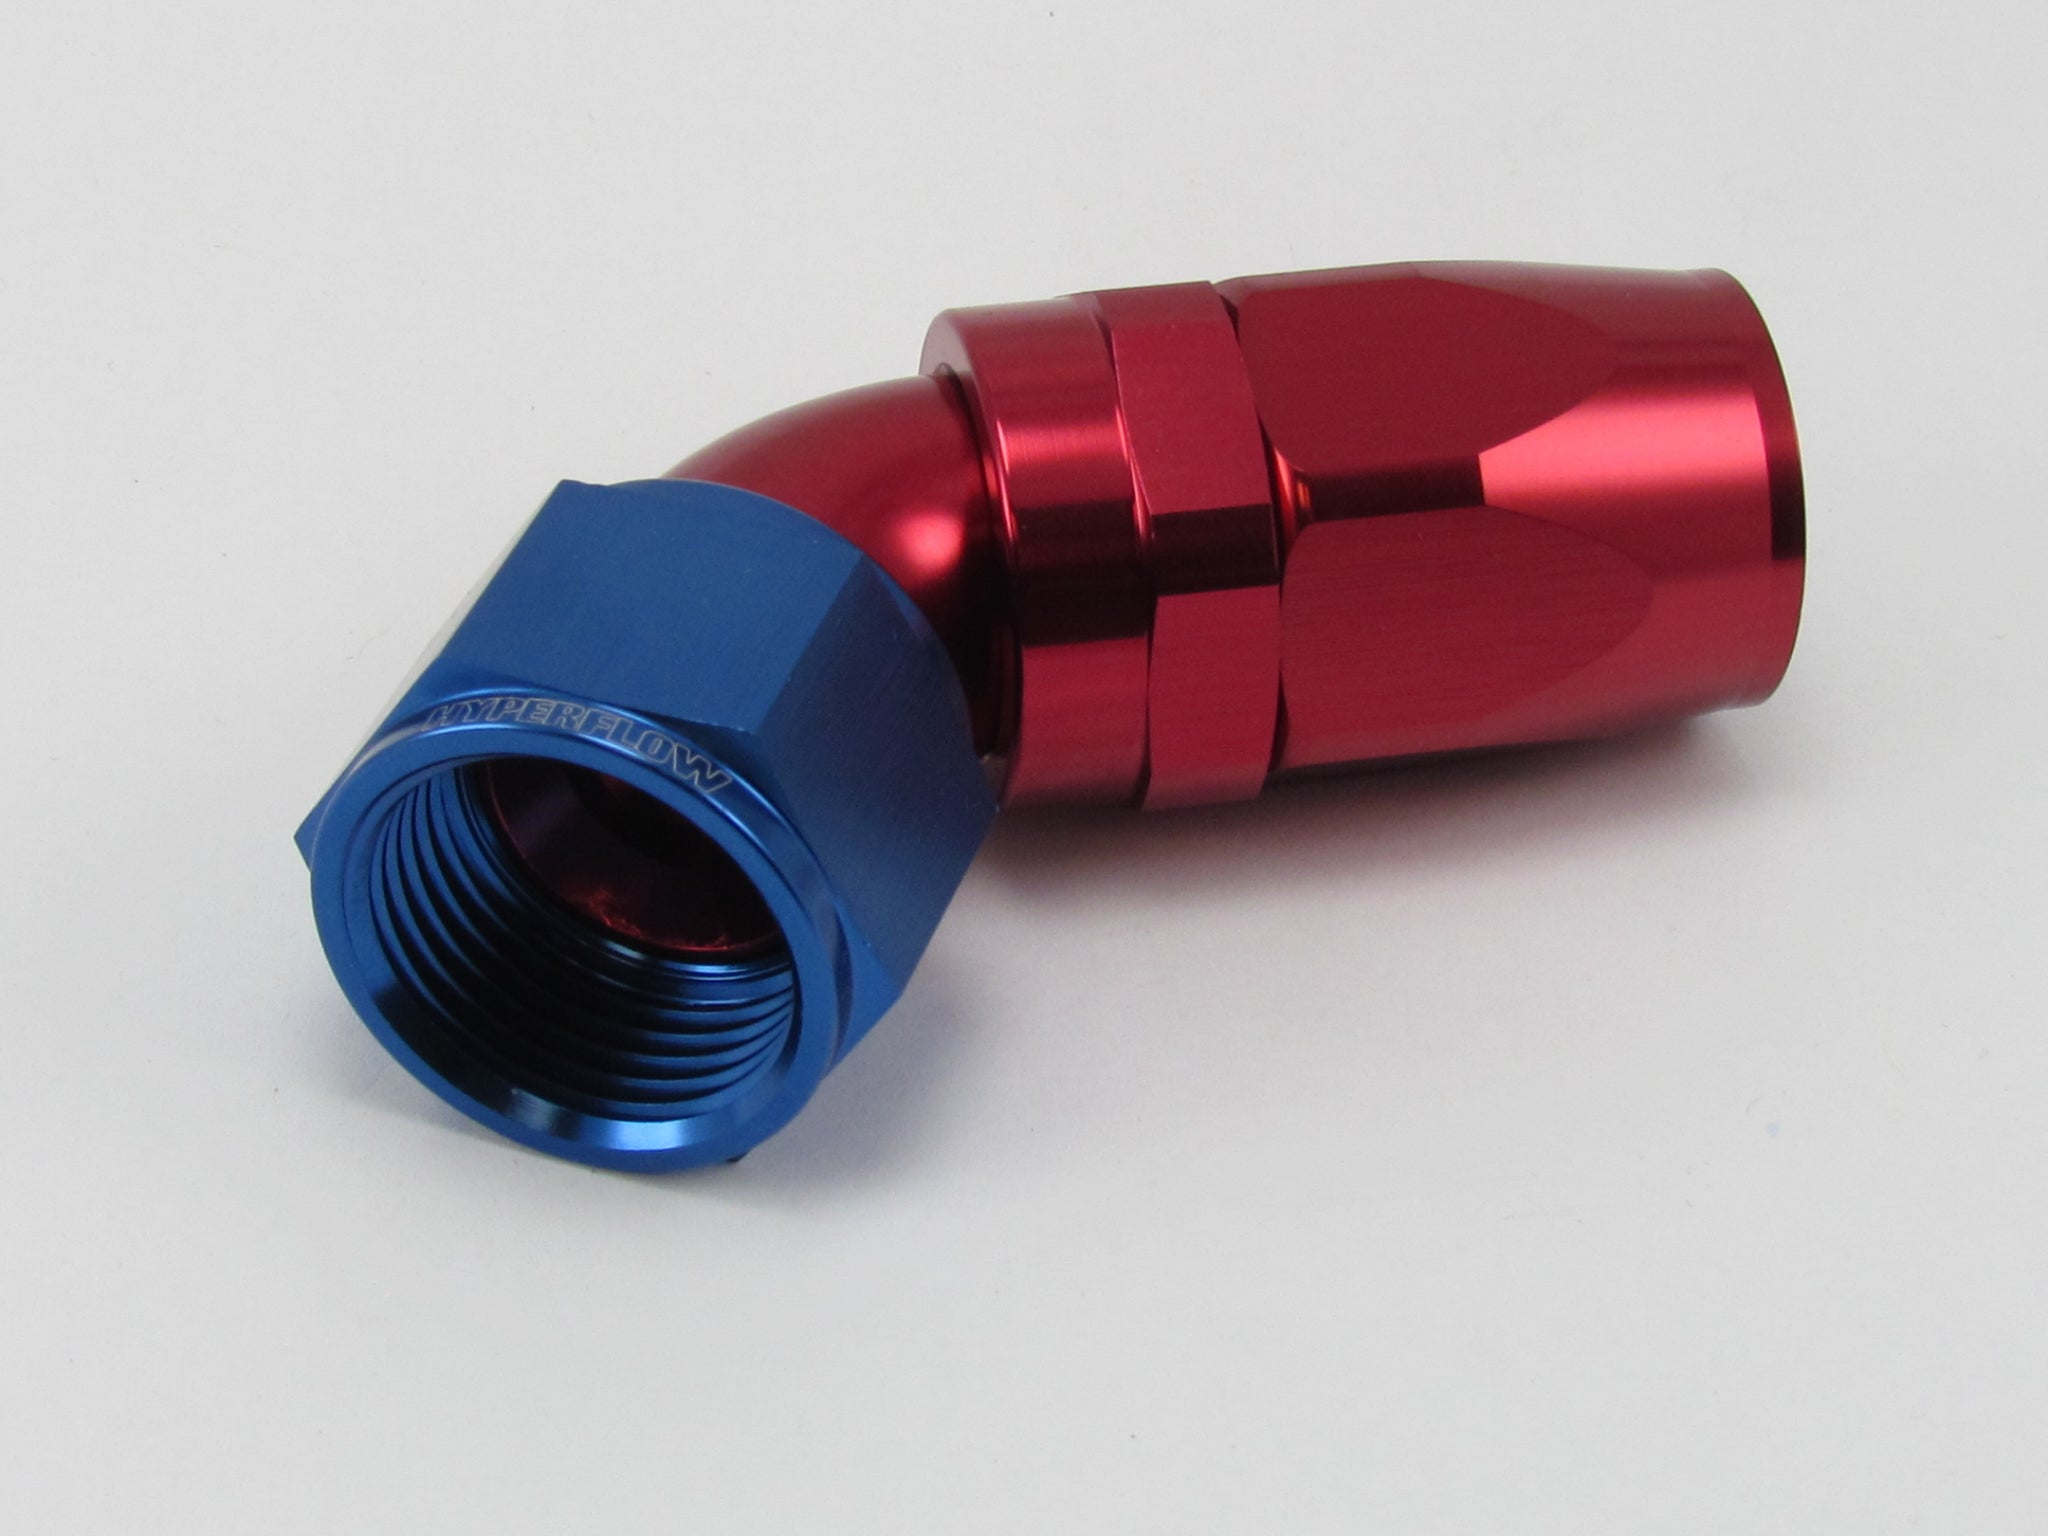 113 SERIES 60° MEGAFLOW SWIVEL HOSE END TAPERED